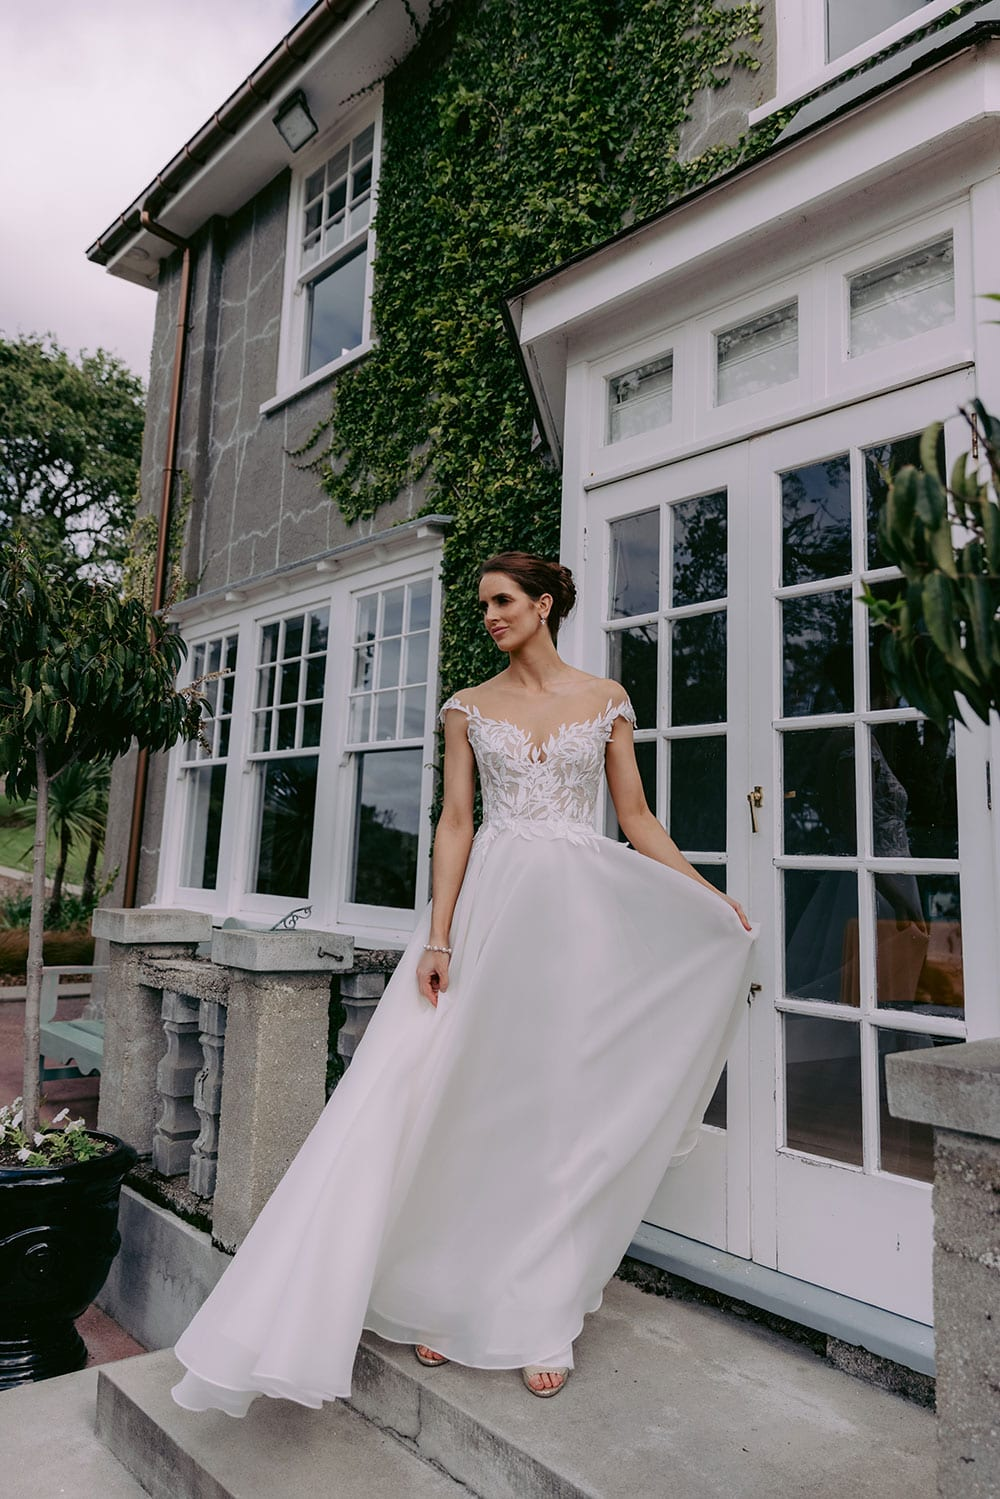 Ariana Wedding gown from Vinka Design - This gorgeous gown features delicate leaf lace hand-appliqued throughout the semi-sheer, structured bodice and up over the shoulder and skirt made of dreamy satin organza layers. Model wearing gown on steps outside country home holding satin skirt out.